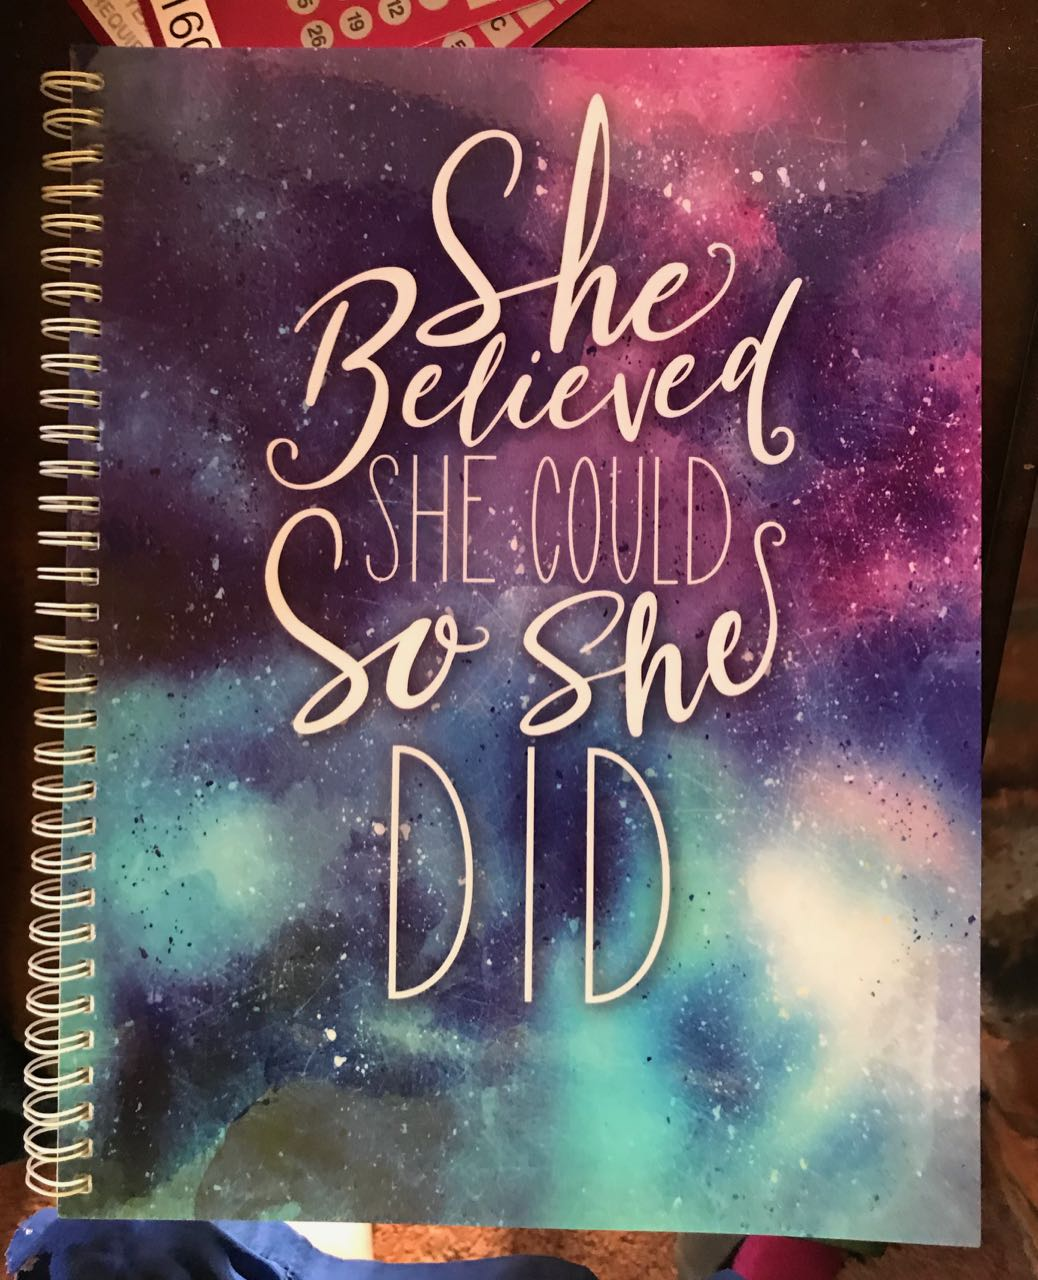 This project requires a notebook that constantly reminds me to keep the faith.